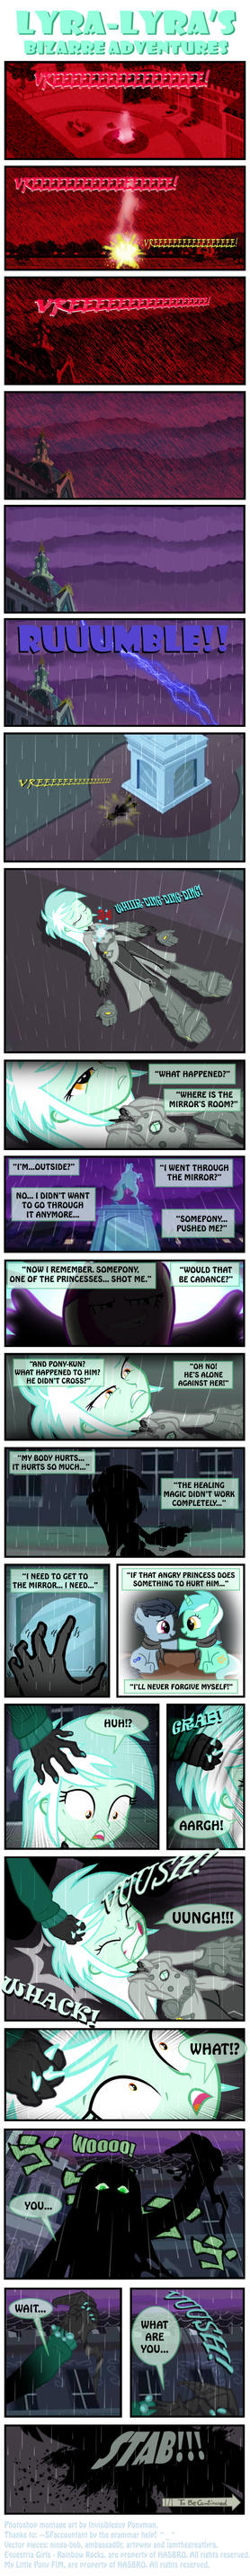 Lyra-Lyra's Bizarre Adventures  (Part- 02) by INVISIBLEGUY-PONYMAN